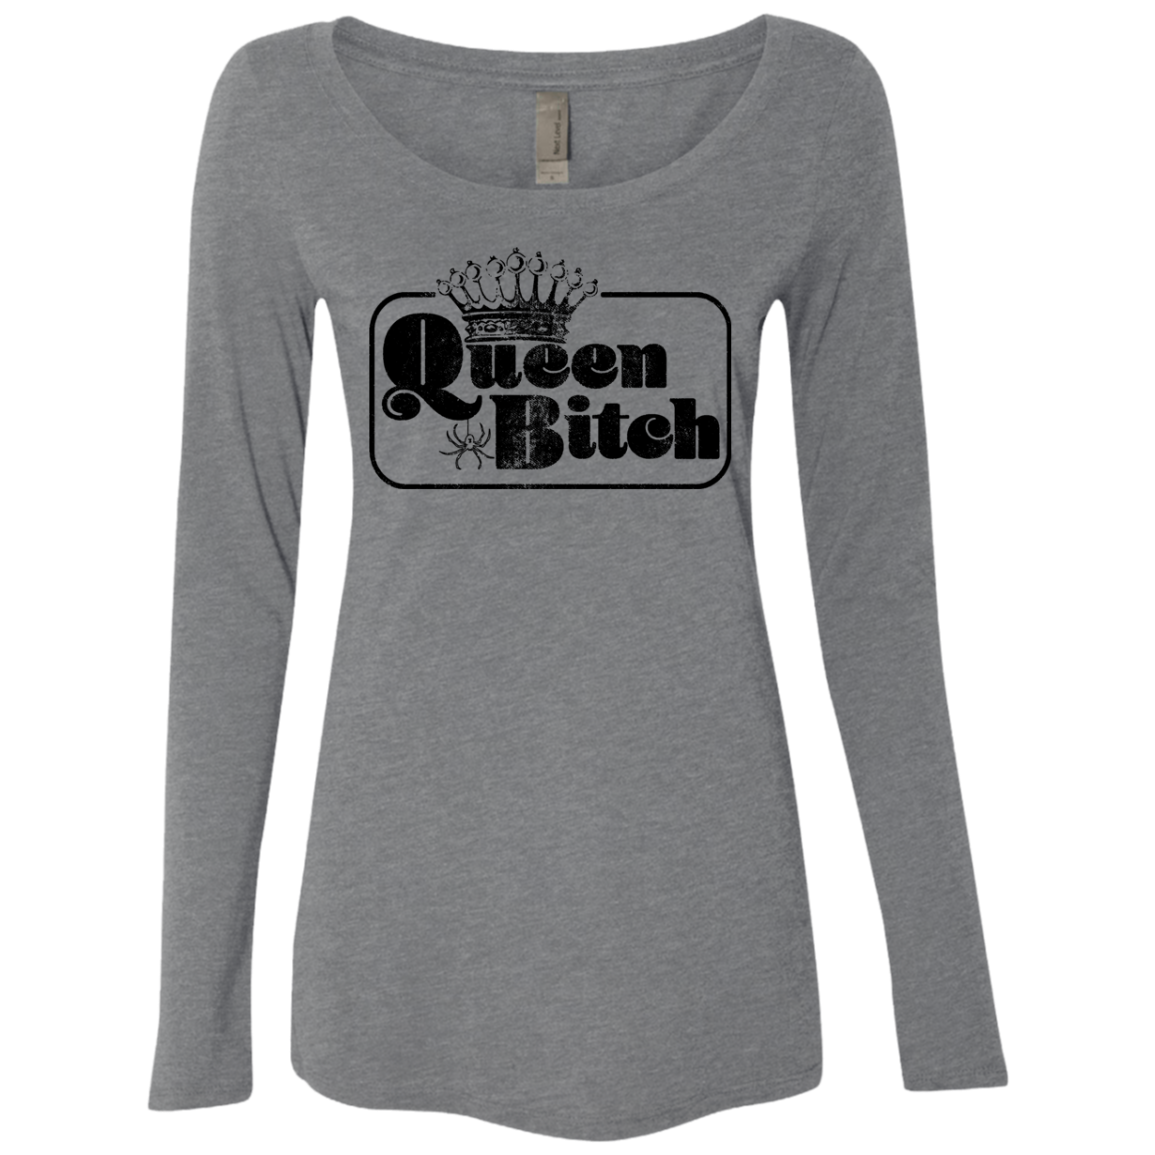 Quuen Bitch Women's Long Sleeve Tee